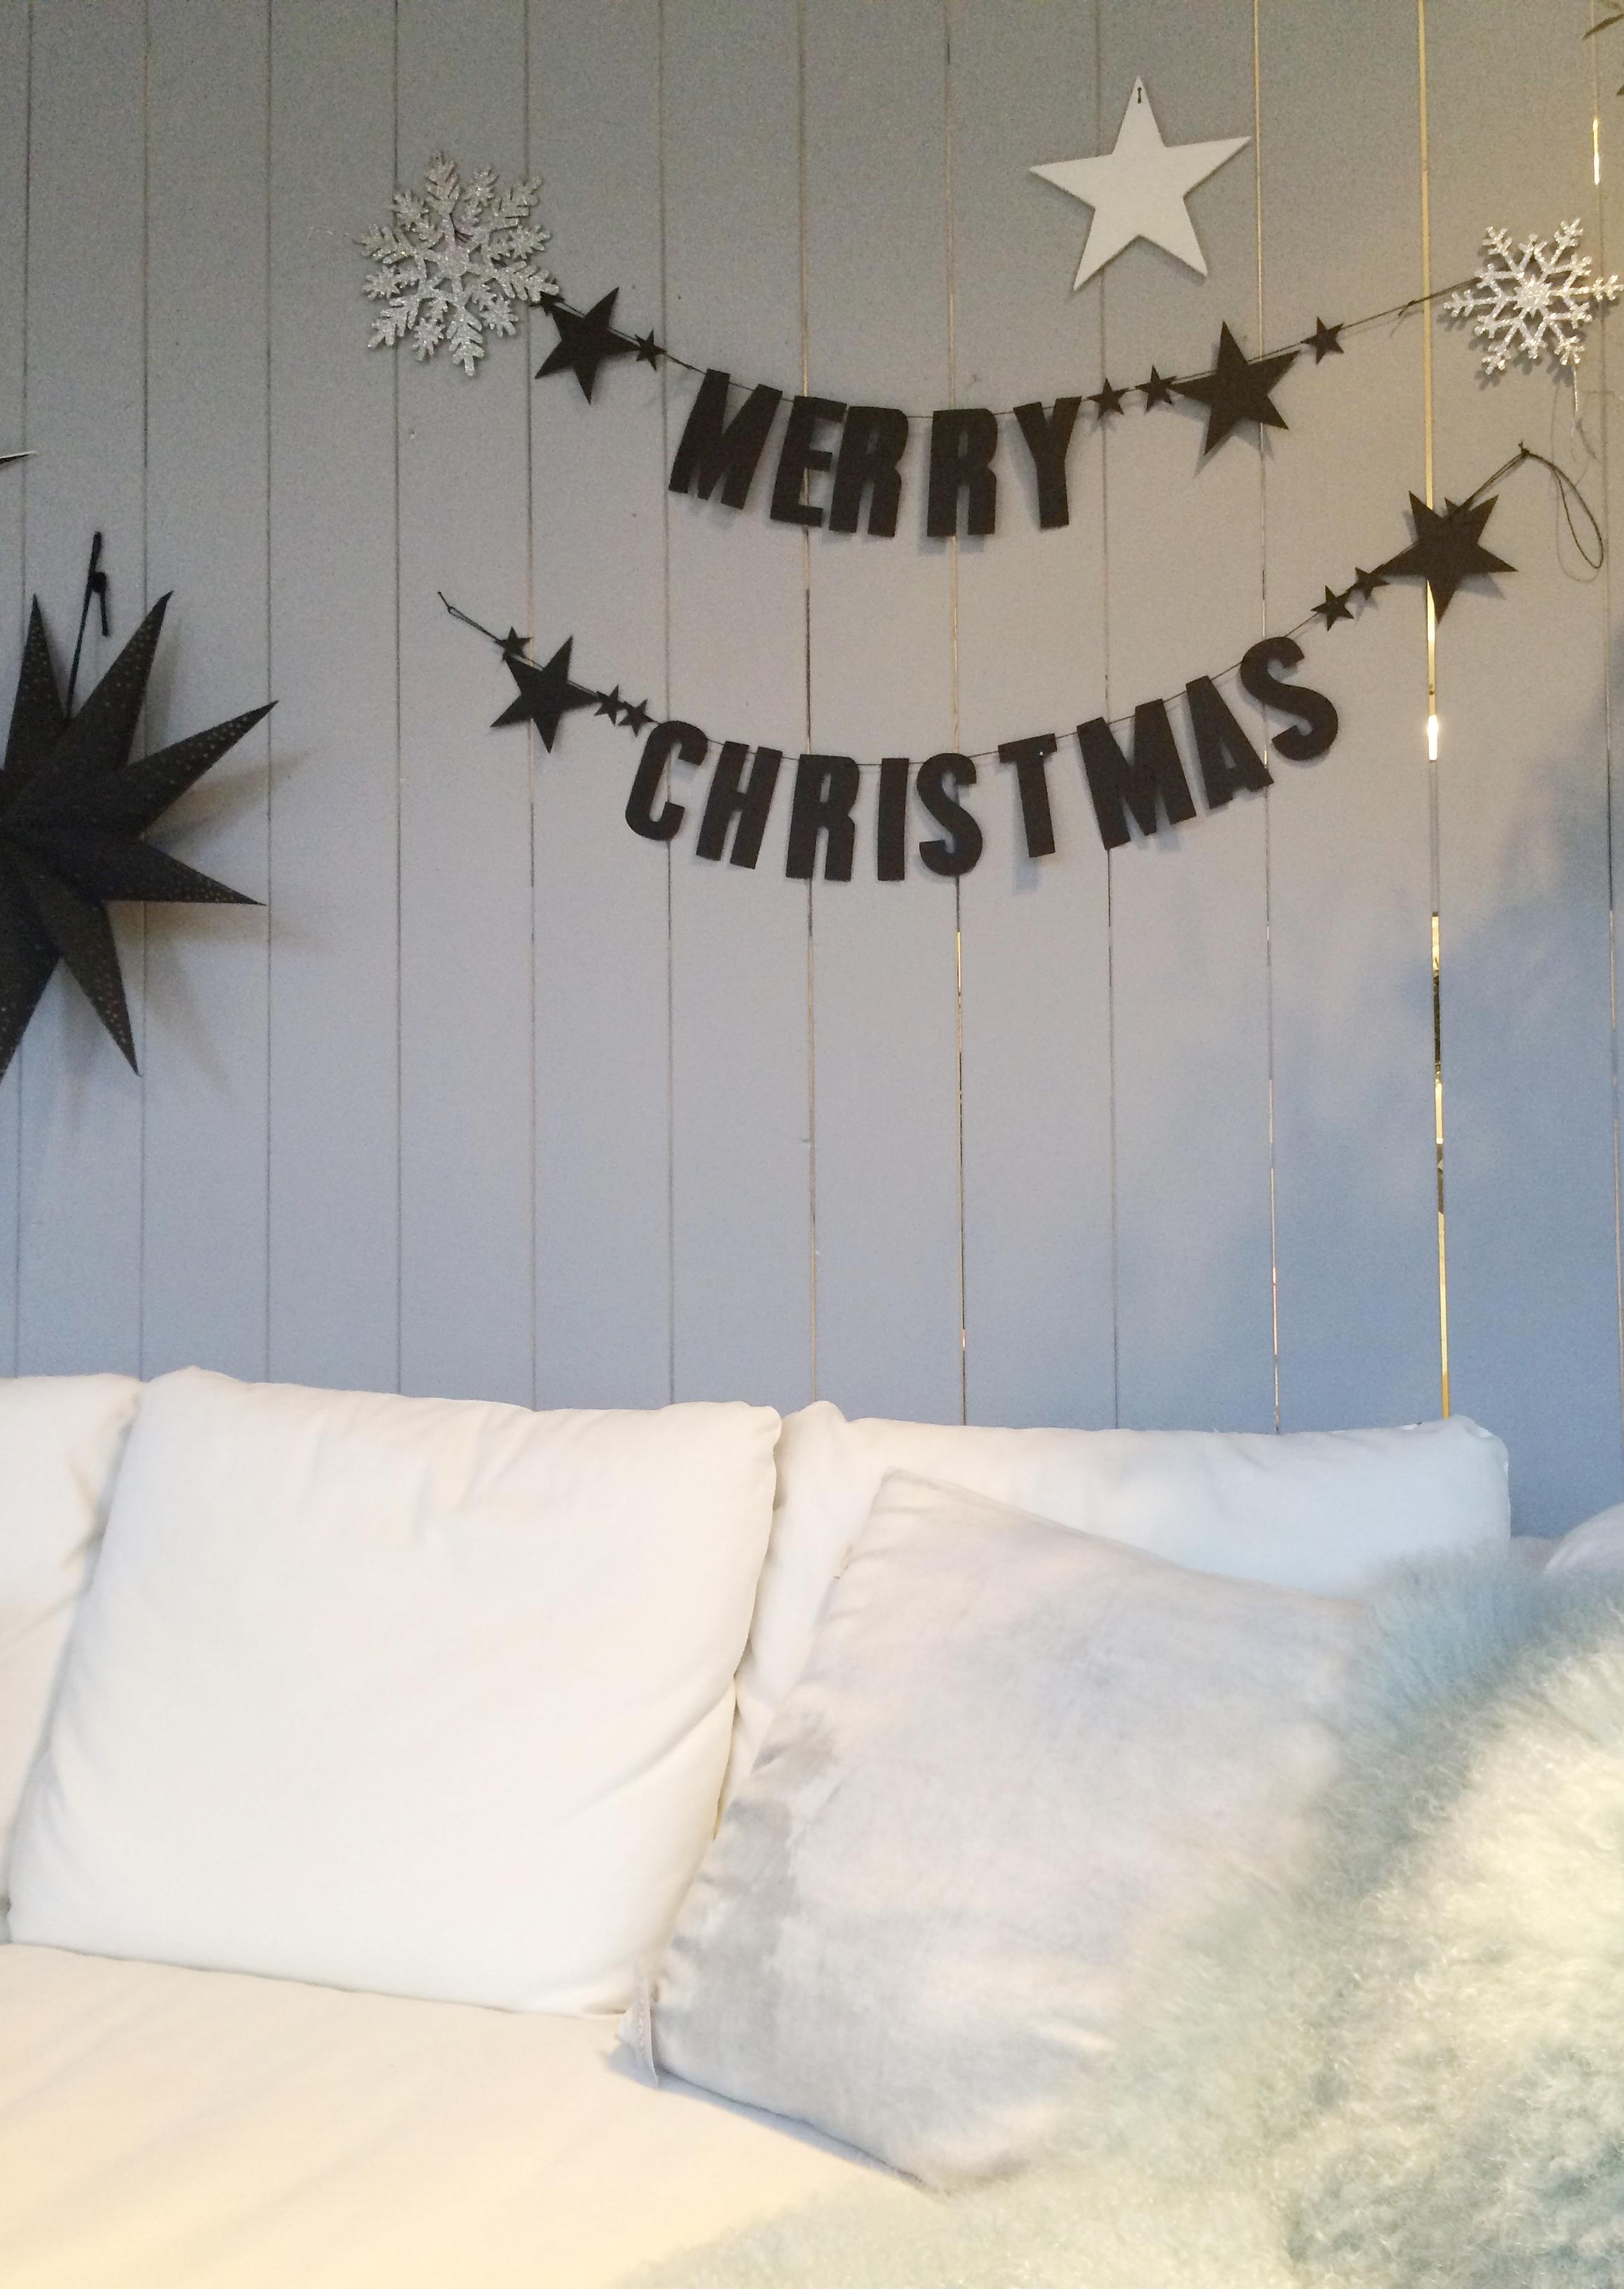 Merry Christmas - Girlande #sofa ©Andrea_Fischer